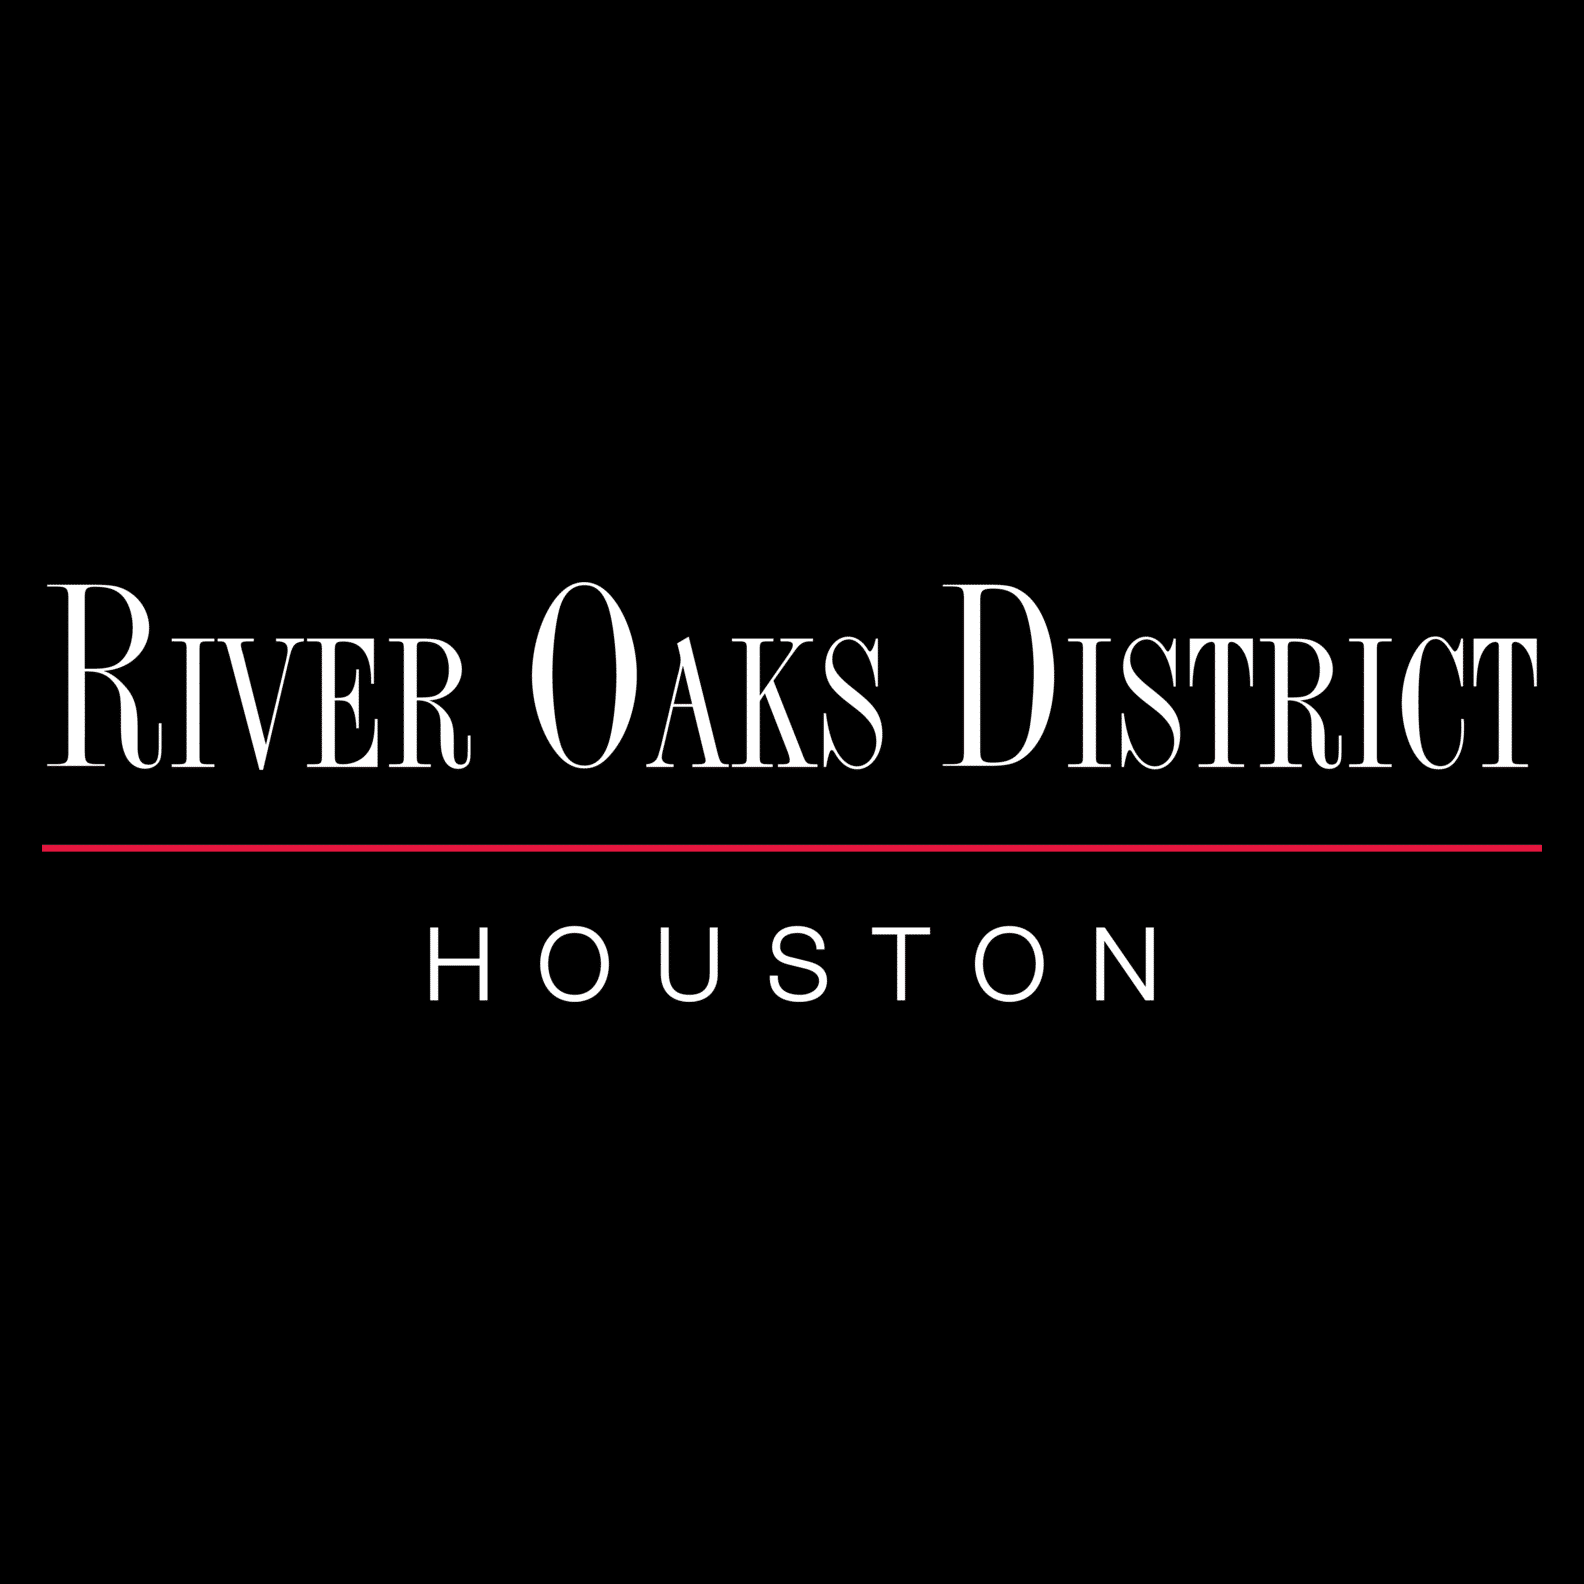 Houston Is A Good Place To Live With Its General Ambiance And Friendly Men And Women